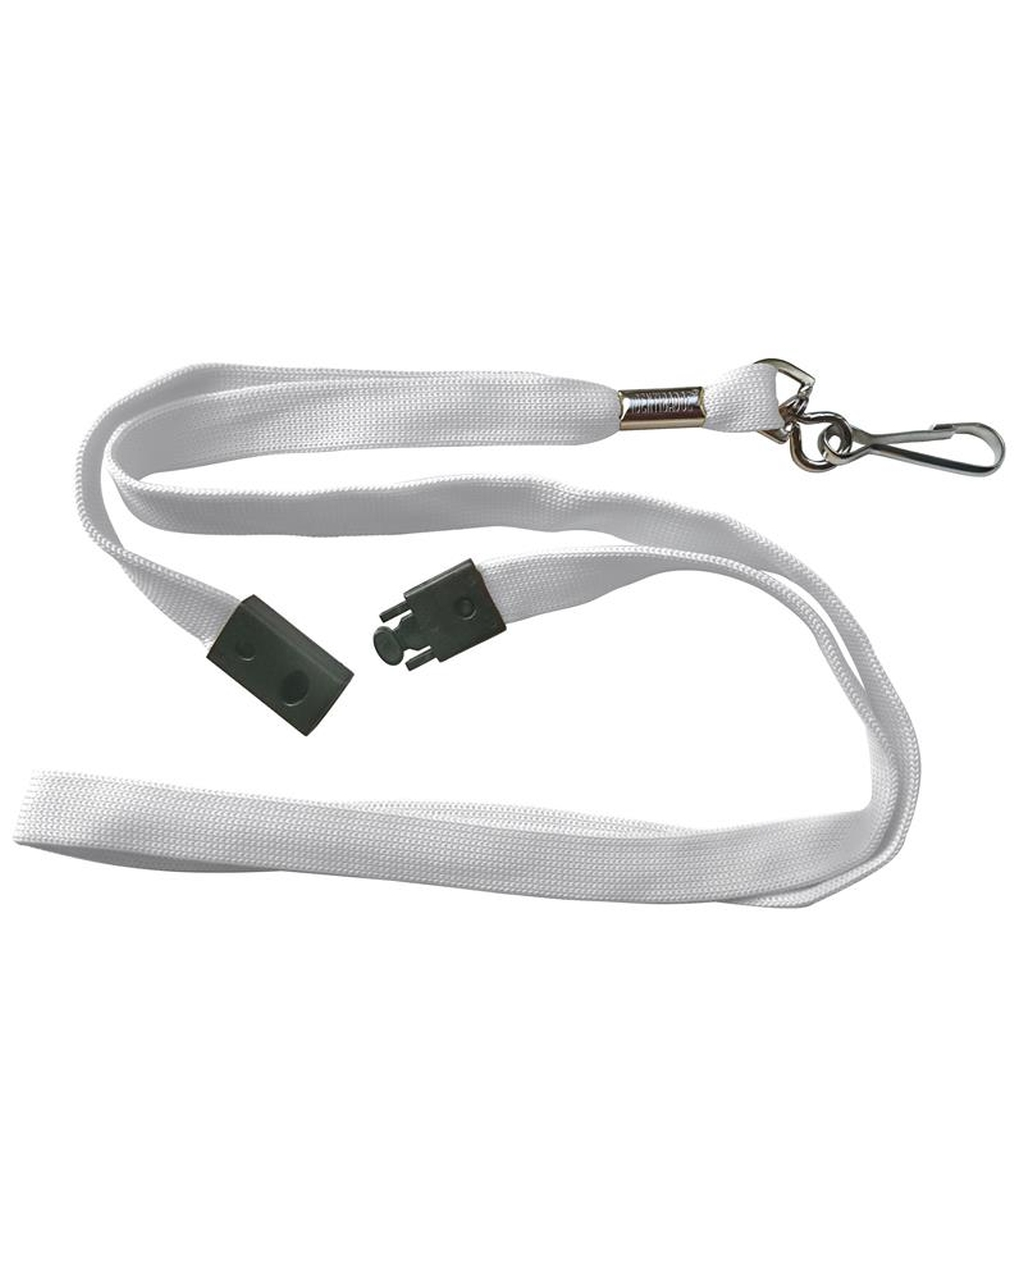 10 Breakaway Lanyards - White